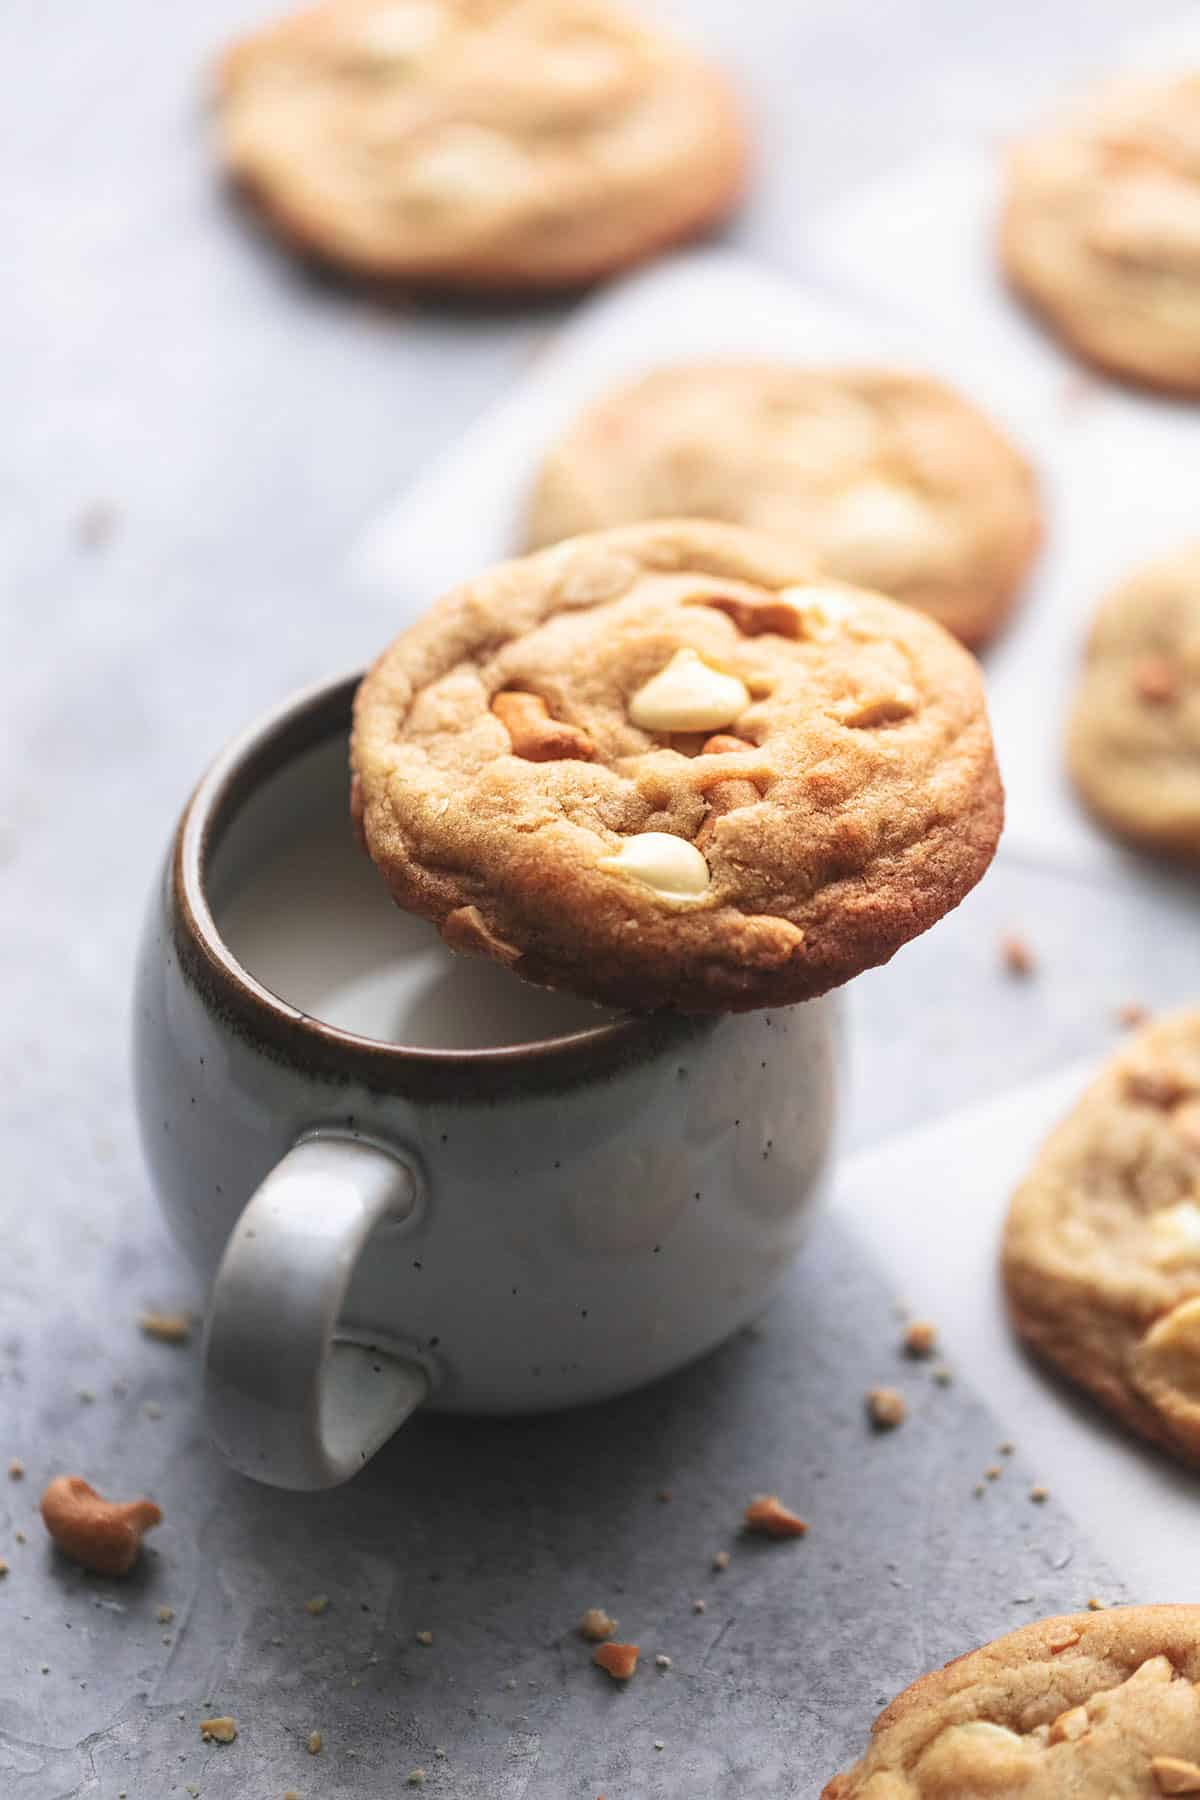 a chewy white chocolate cashew cookie a mug of milk with more cookies on the side.